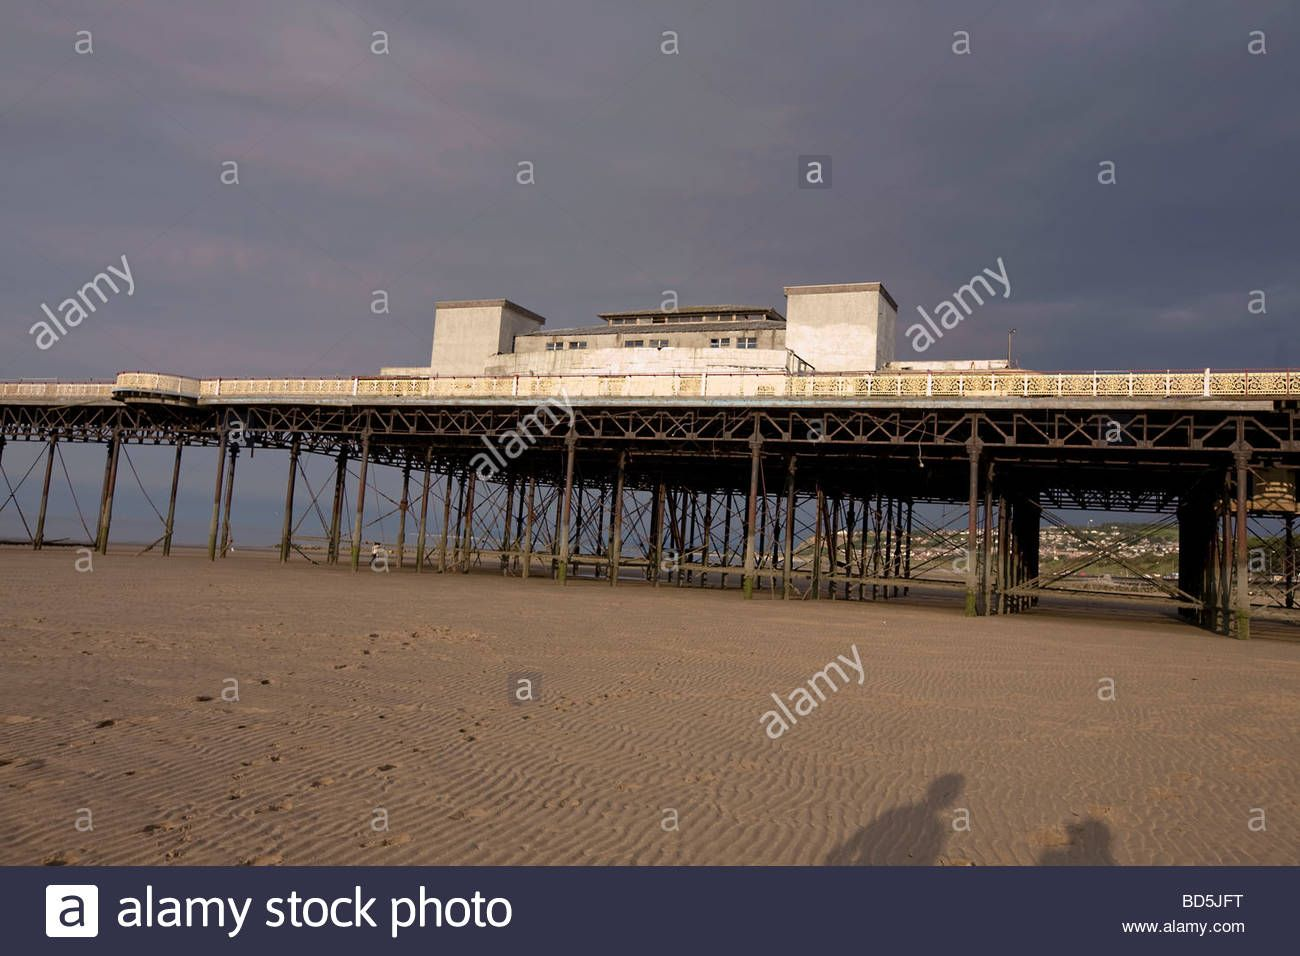 Old Decaying Pier On A Beach Stock Photo, Royalty Free Image: 25325212 - Alamy